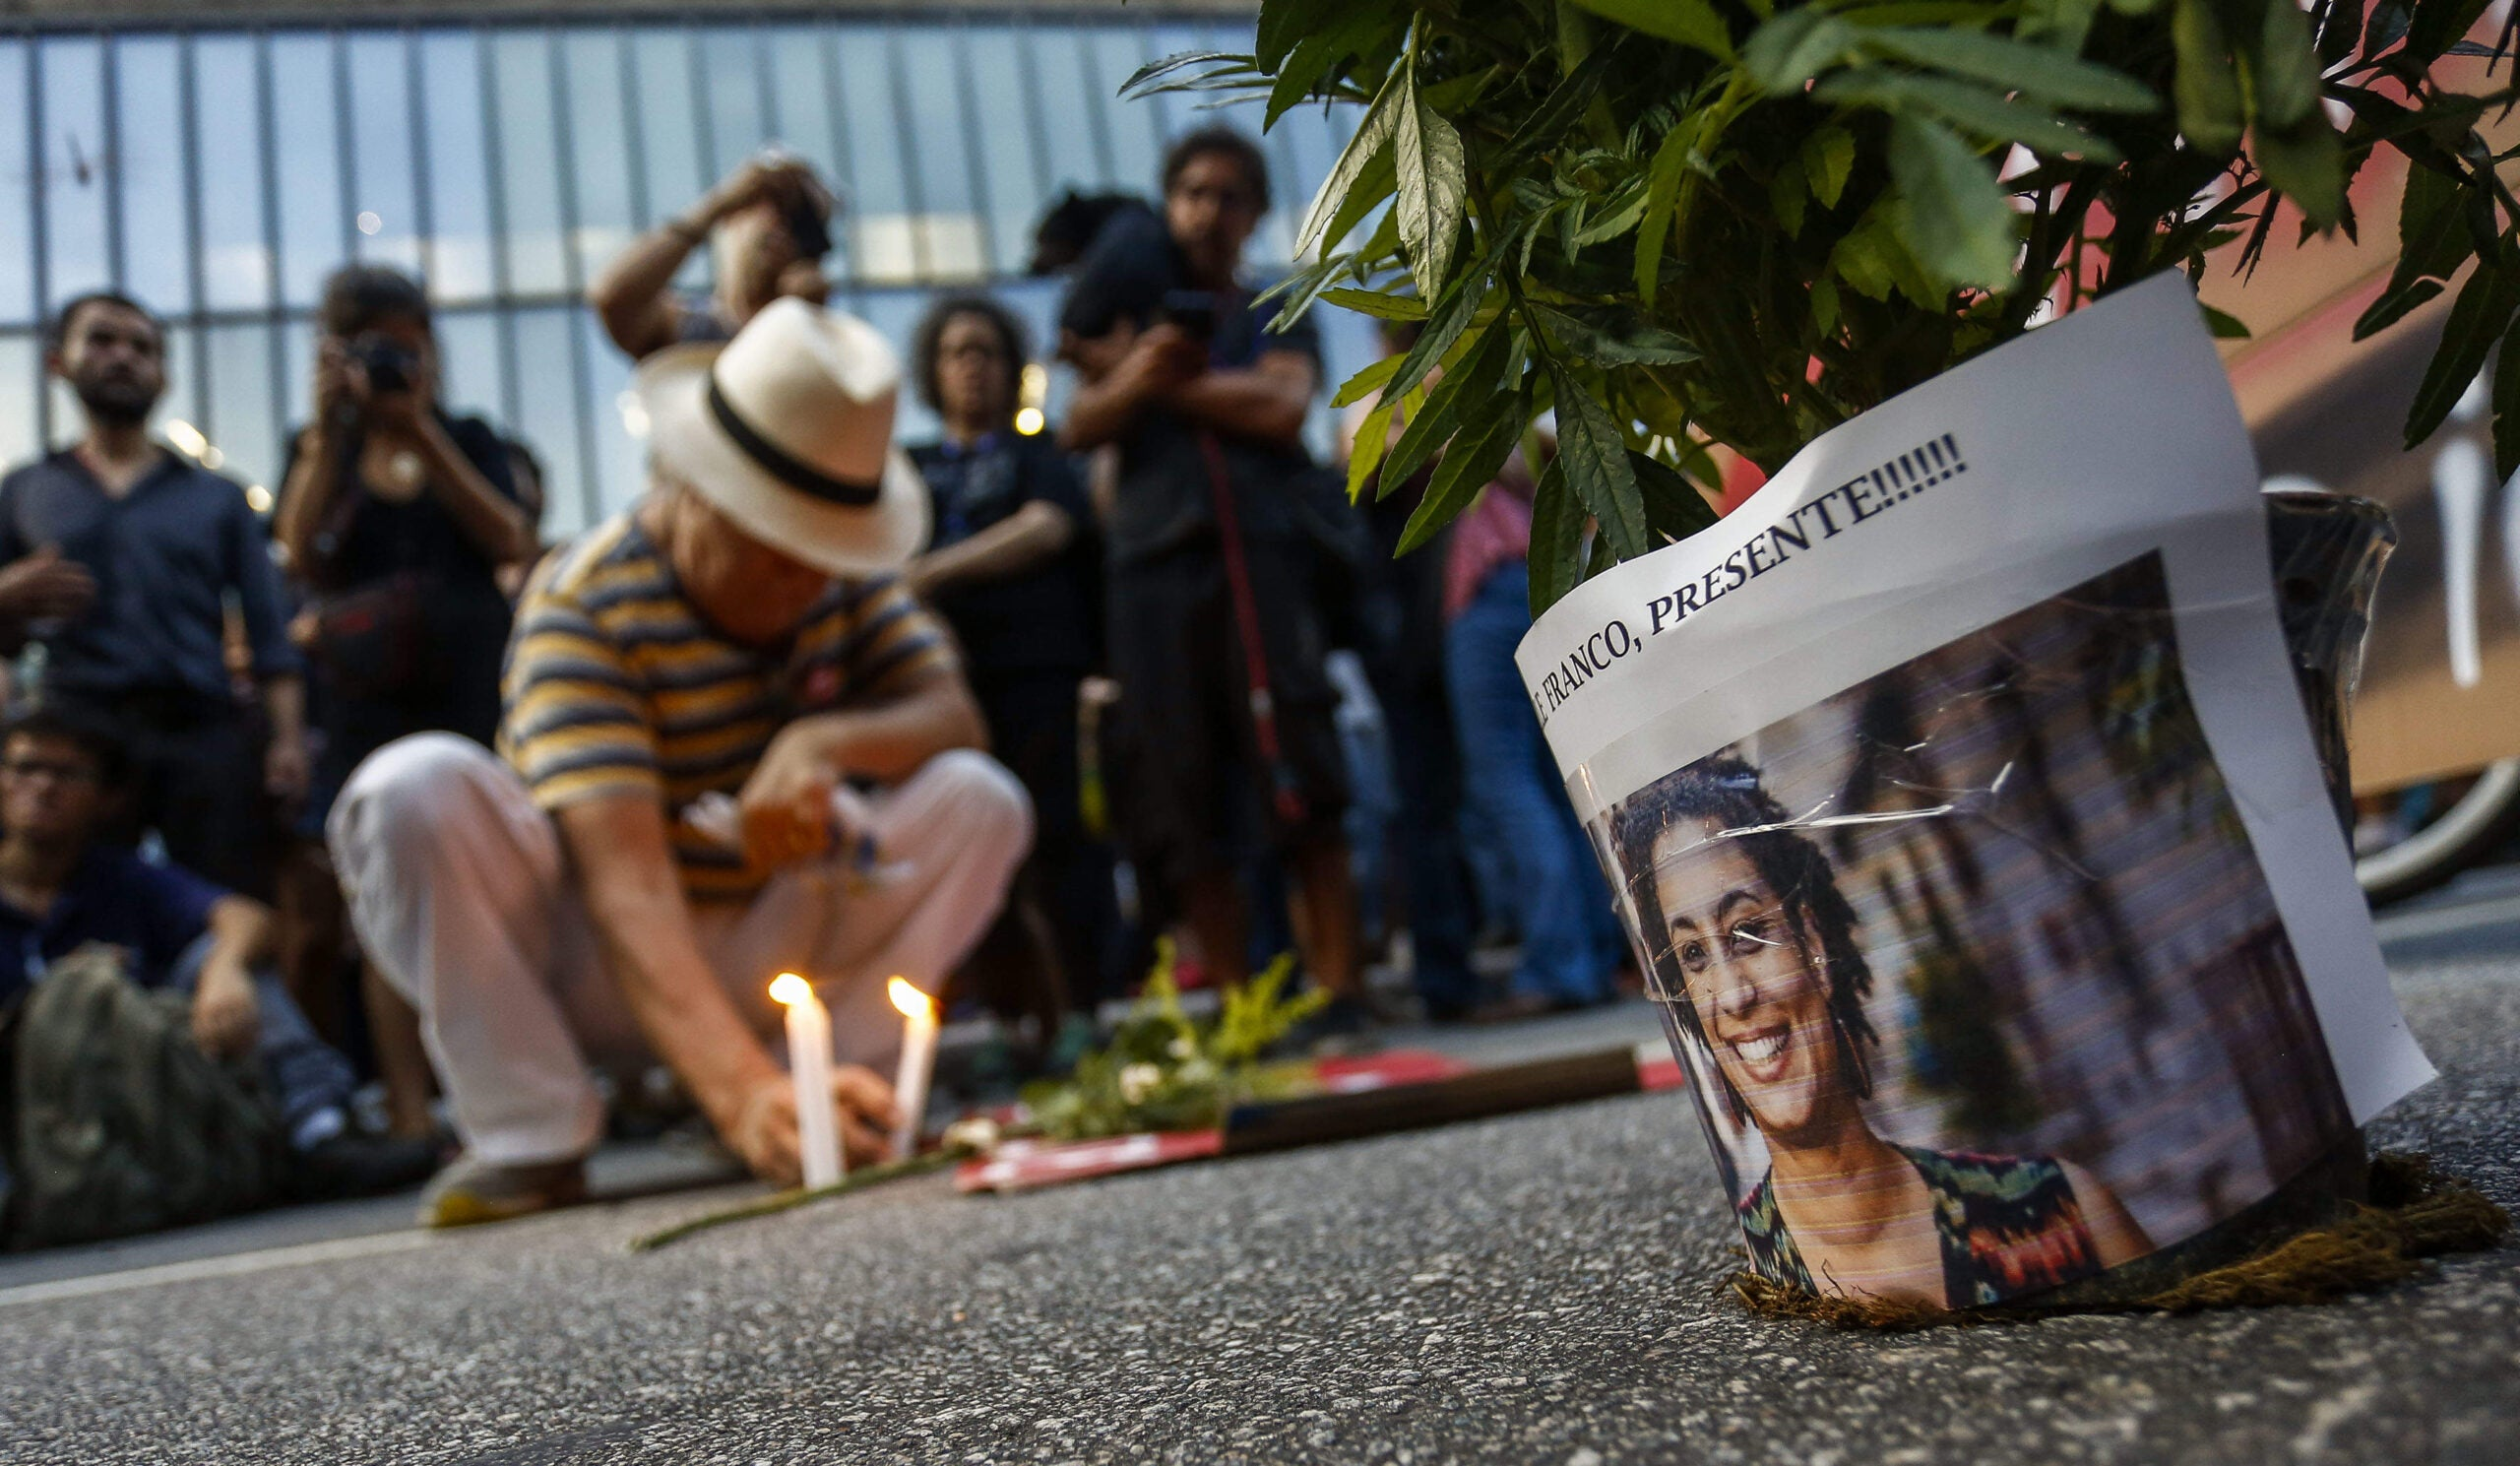 Marielle Franco's death is an emblem of the violence against Brazil's poor and black